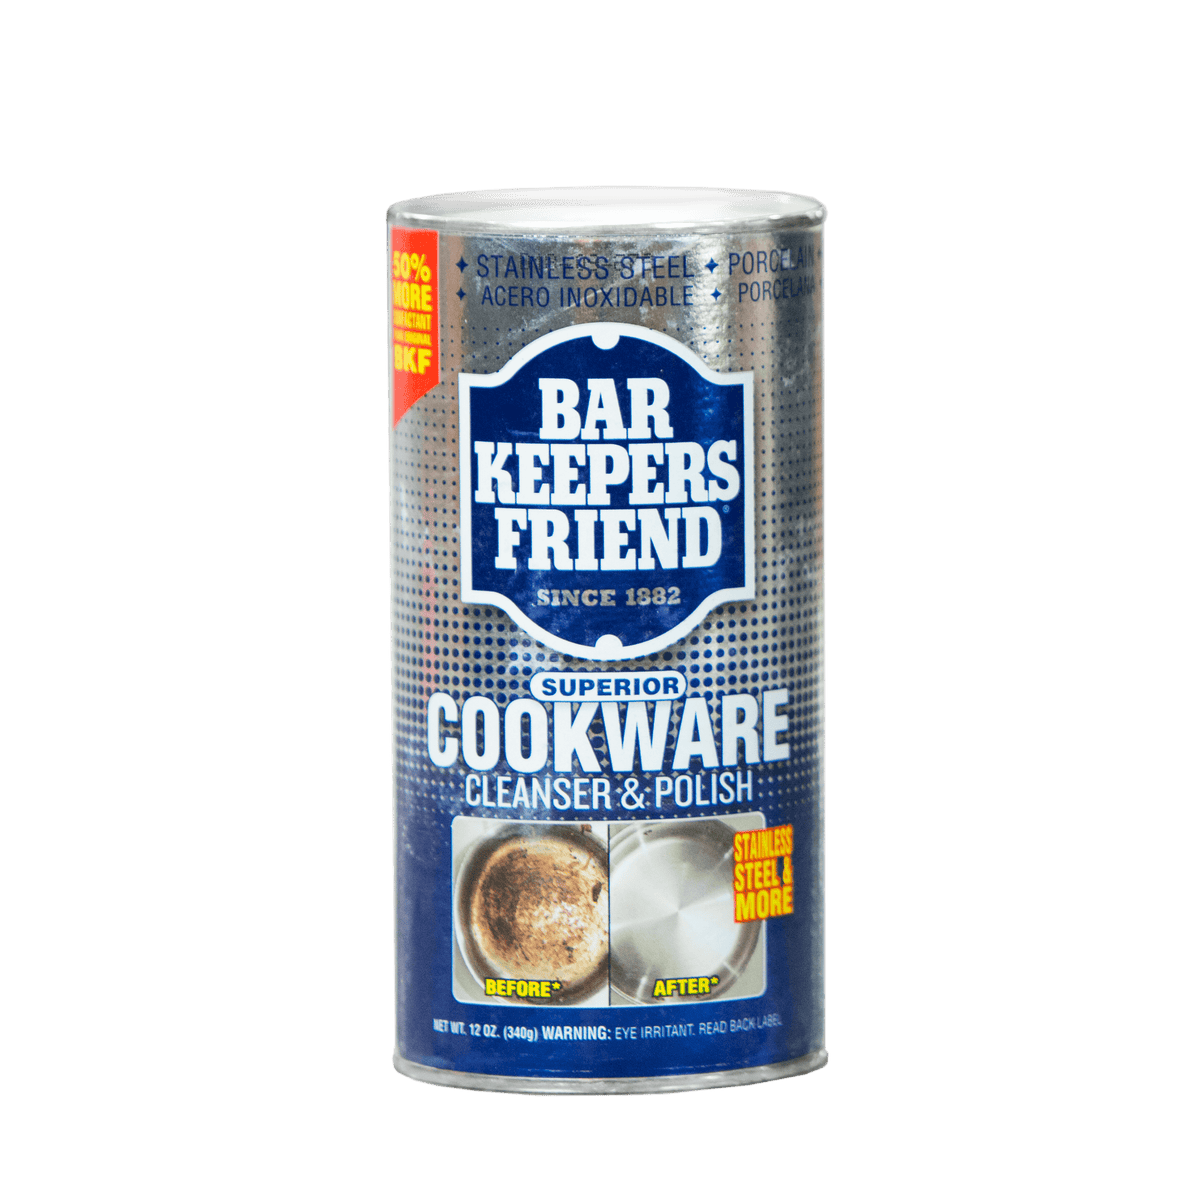 Bar Keepers Friend - Cookware Cleaner